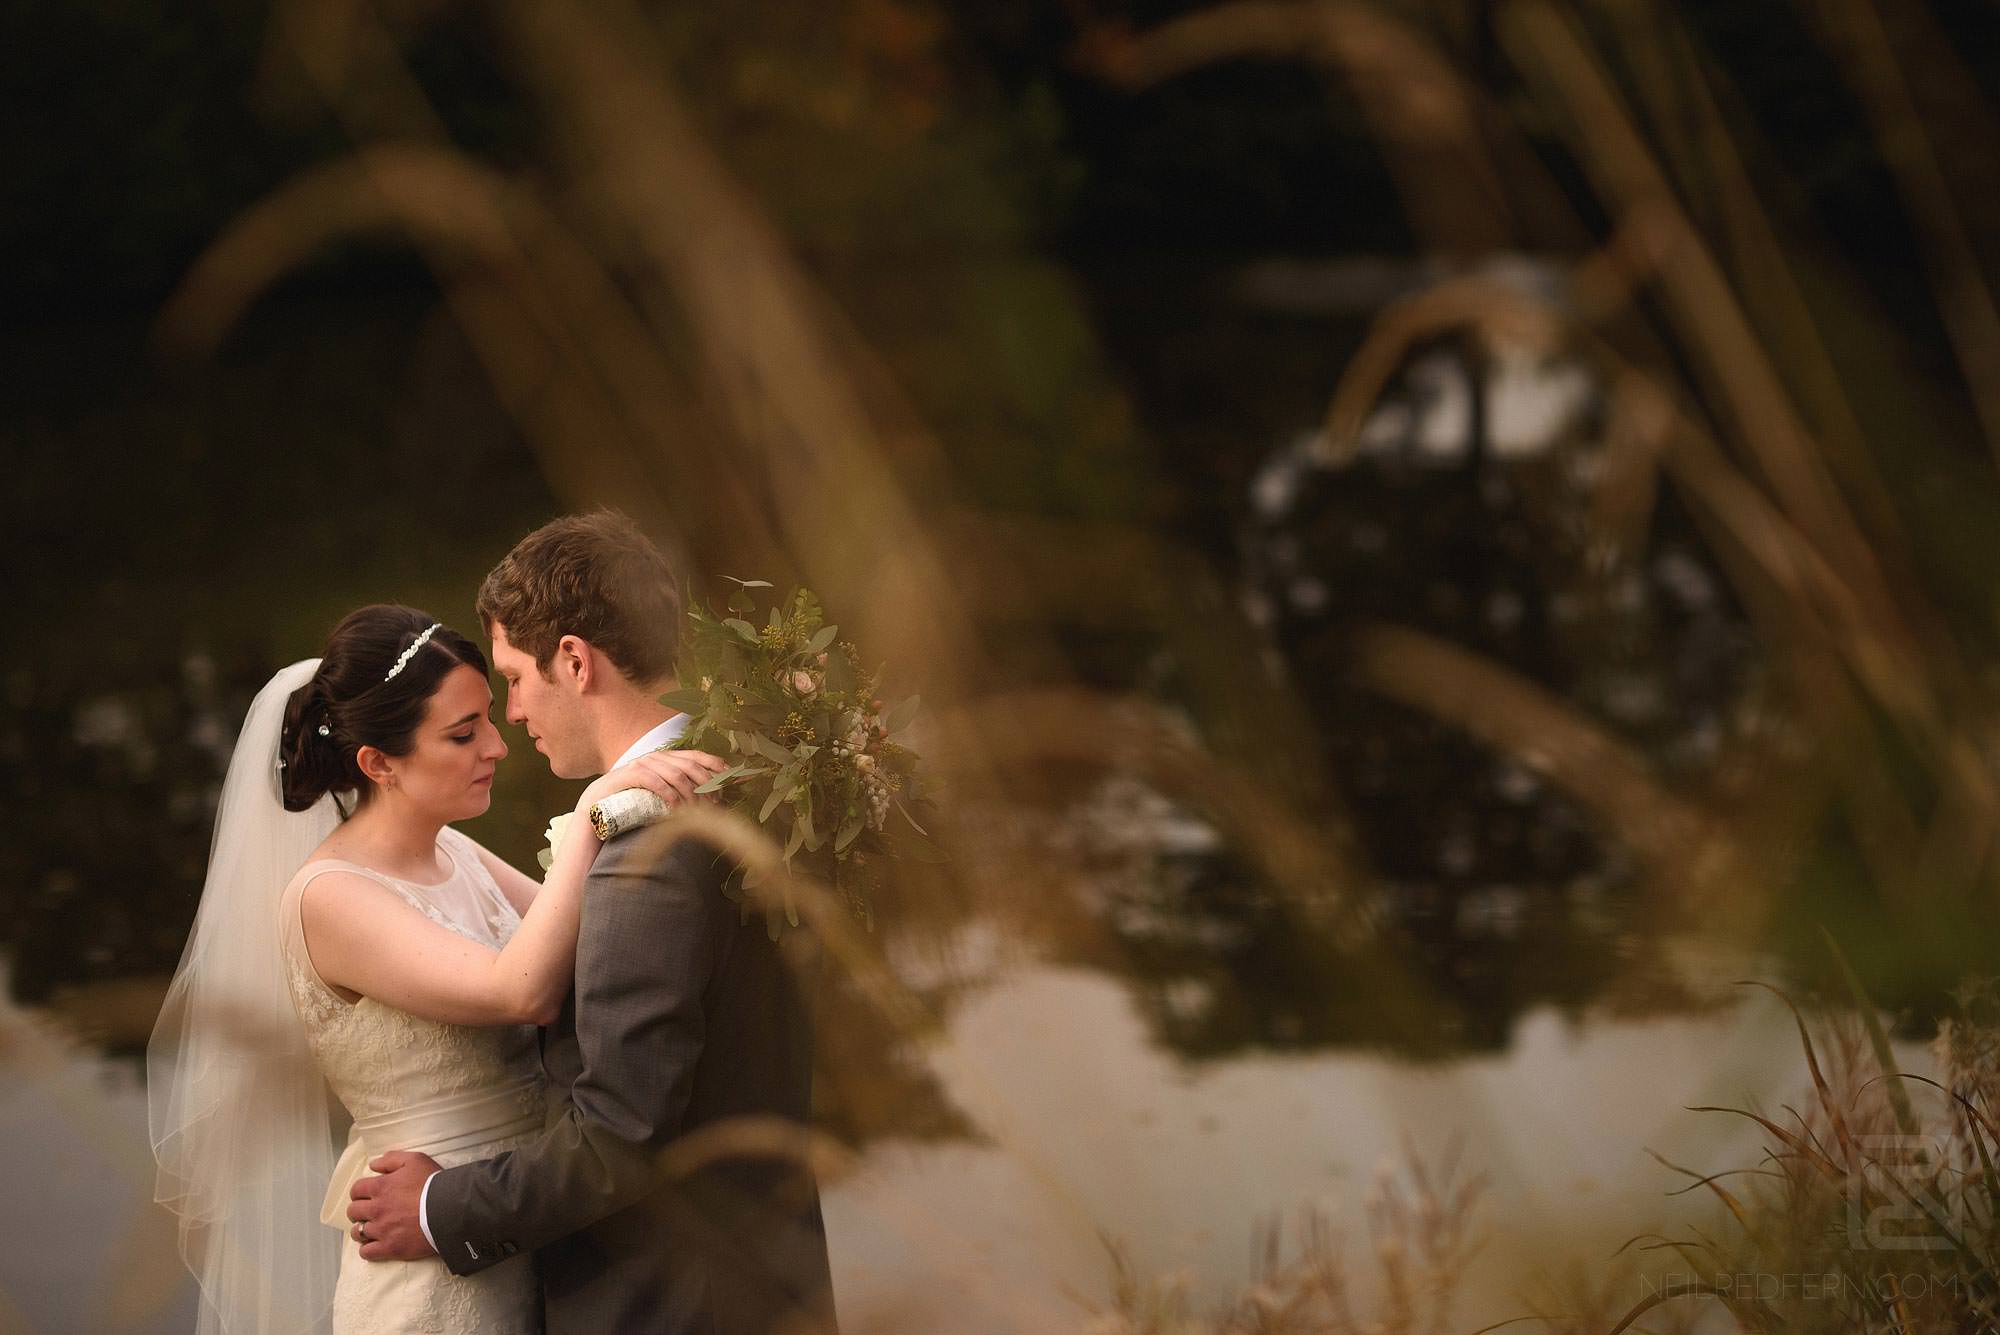 romantic photograph of bride and groom by a lake